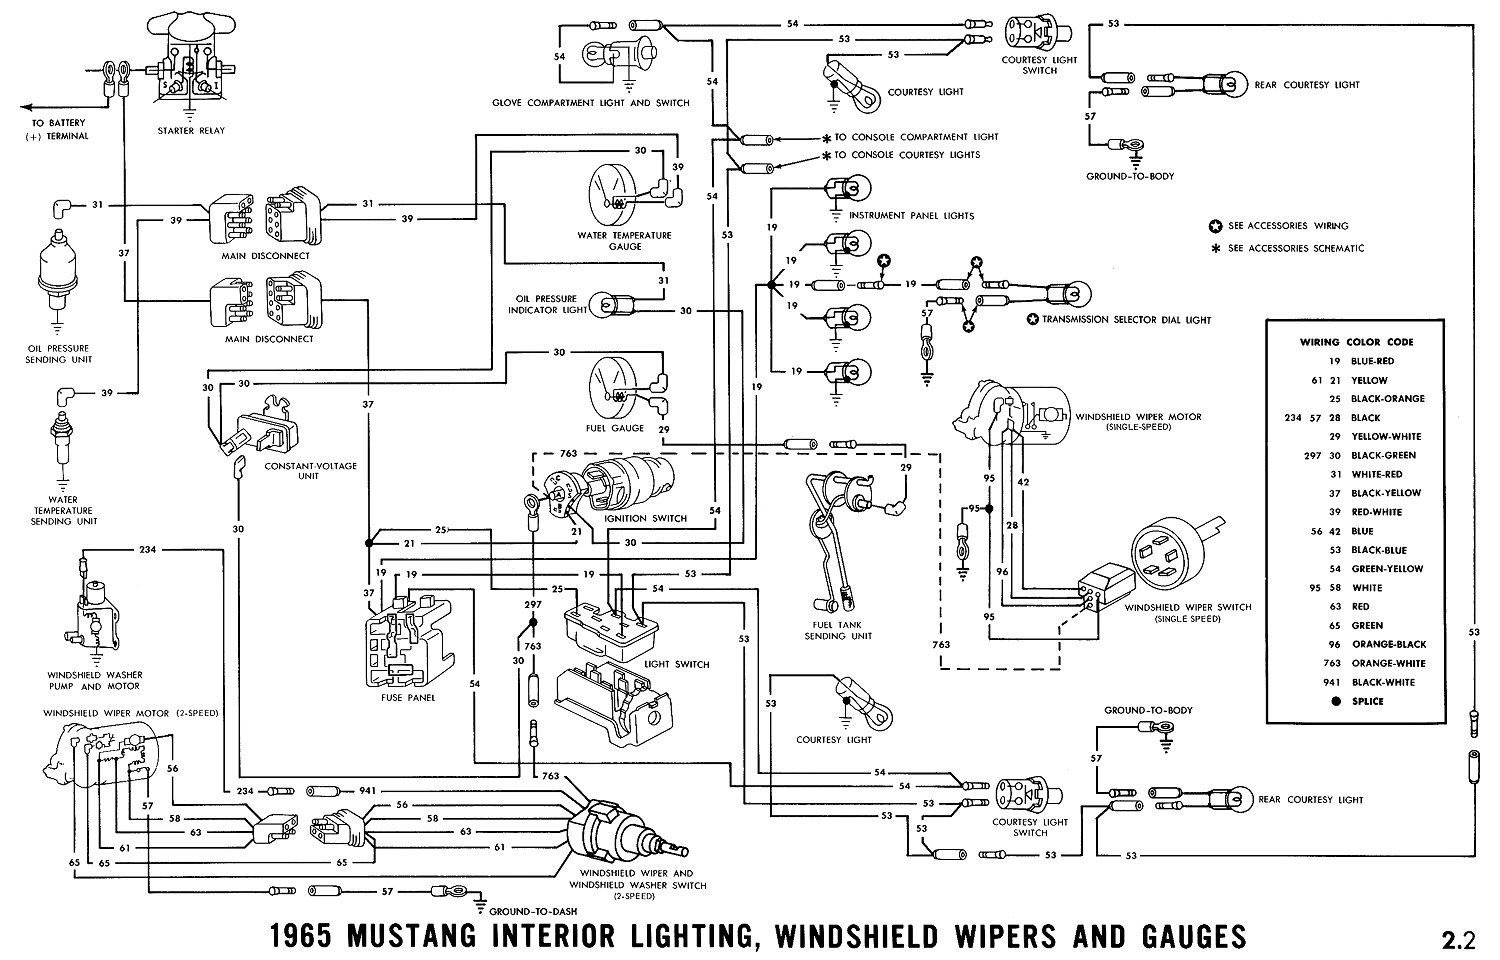 1965g 1965 mustang wiring diagrams average joe restoration 1969 mustang ignition switch wiring diagram at webbmarketing.co